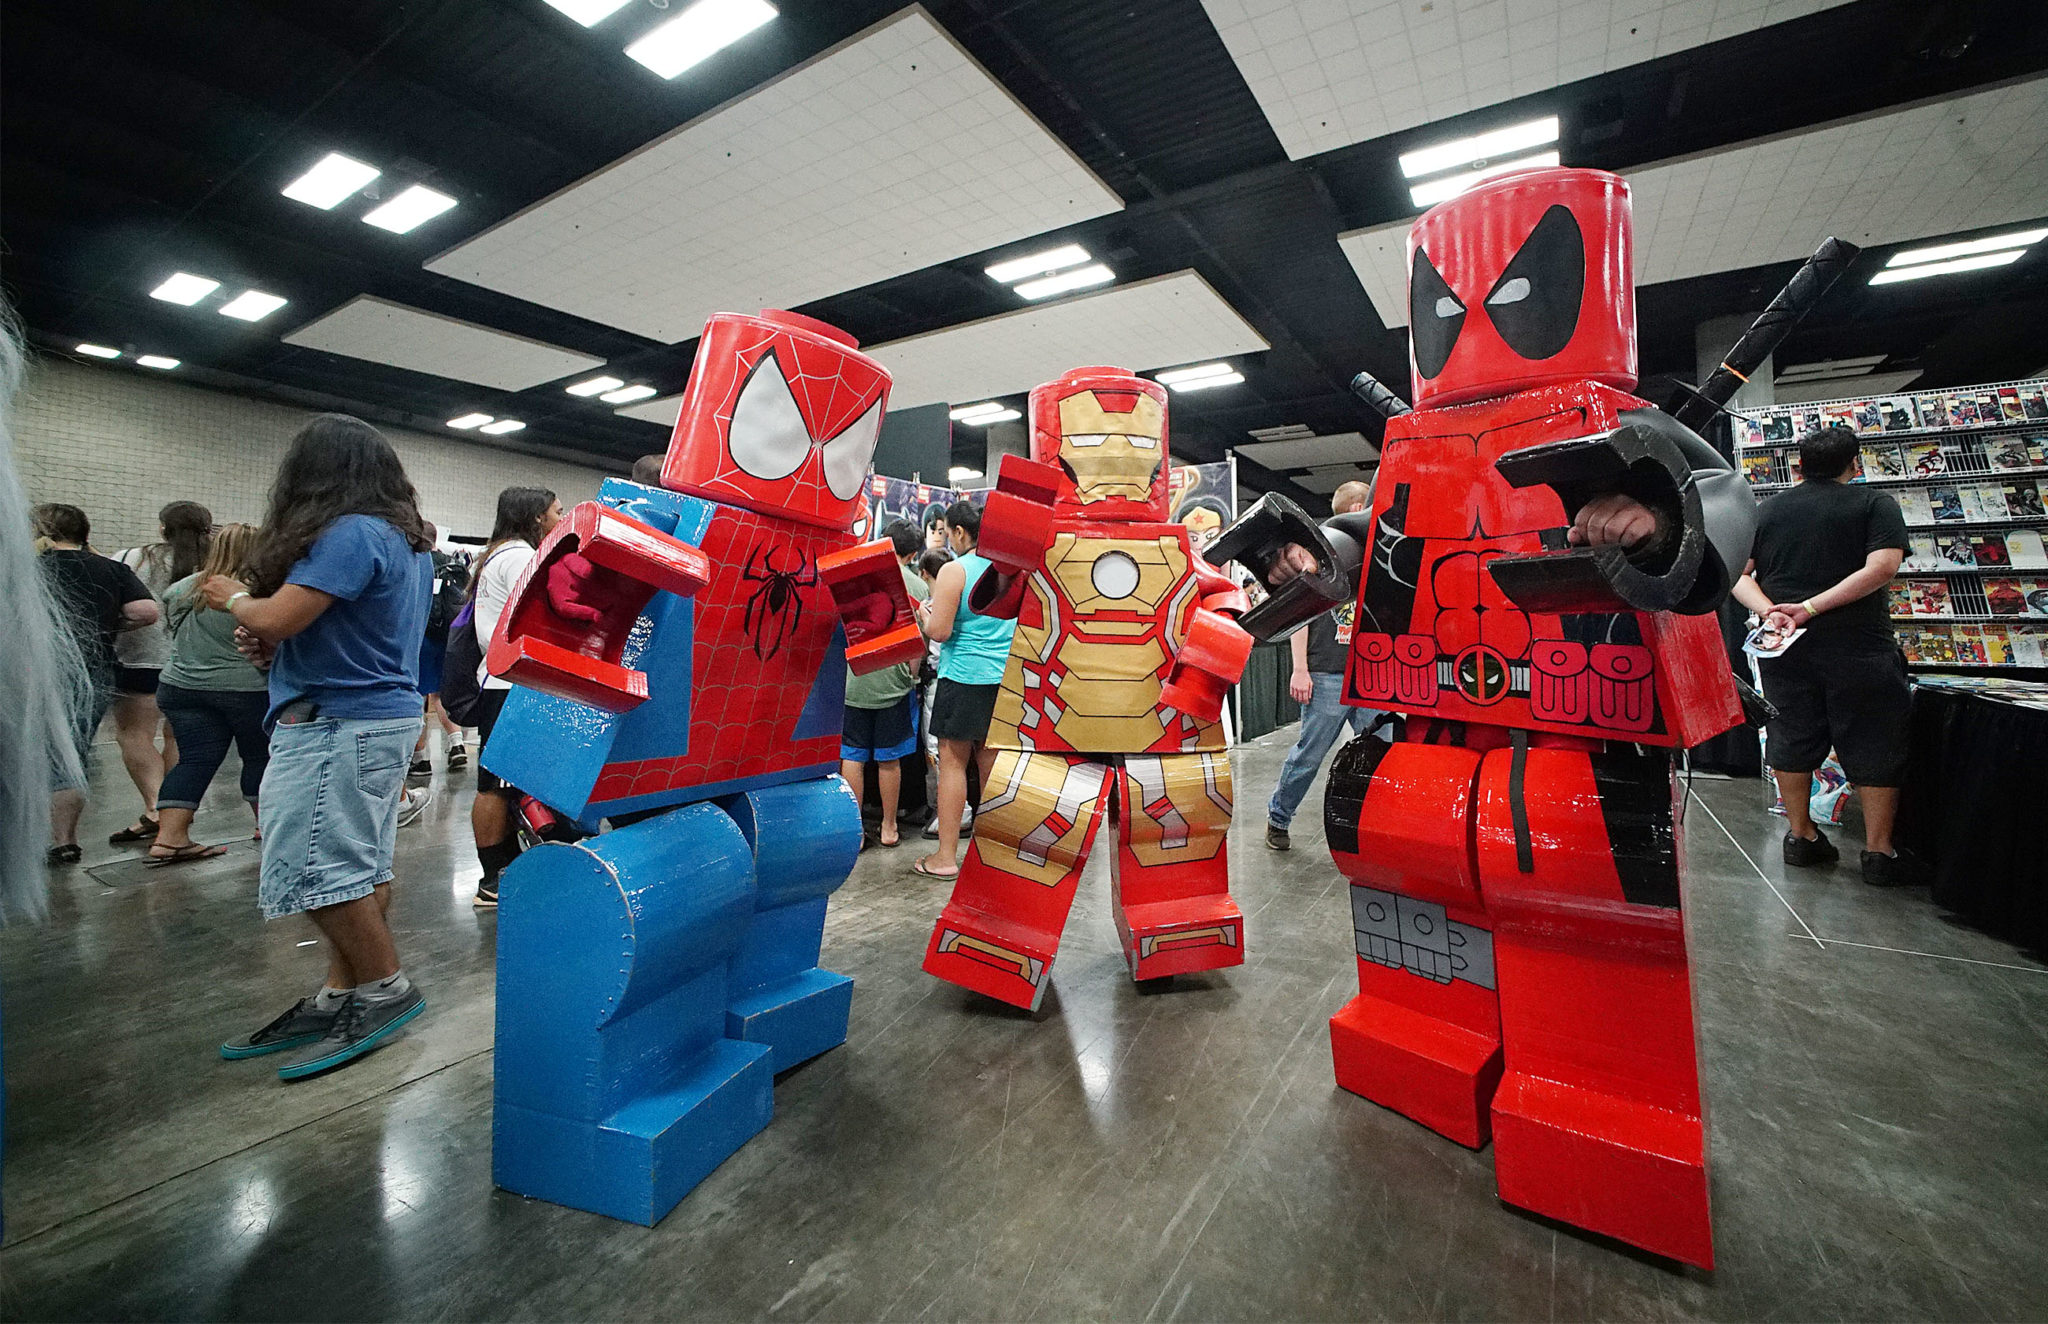 <p>Large Lego versions of Spiderman and Iron Man mingled with attendees. More than 100 comic book vendors were on hand, along with about 150 comic book artists.</p>